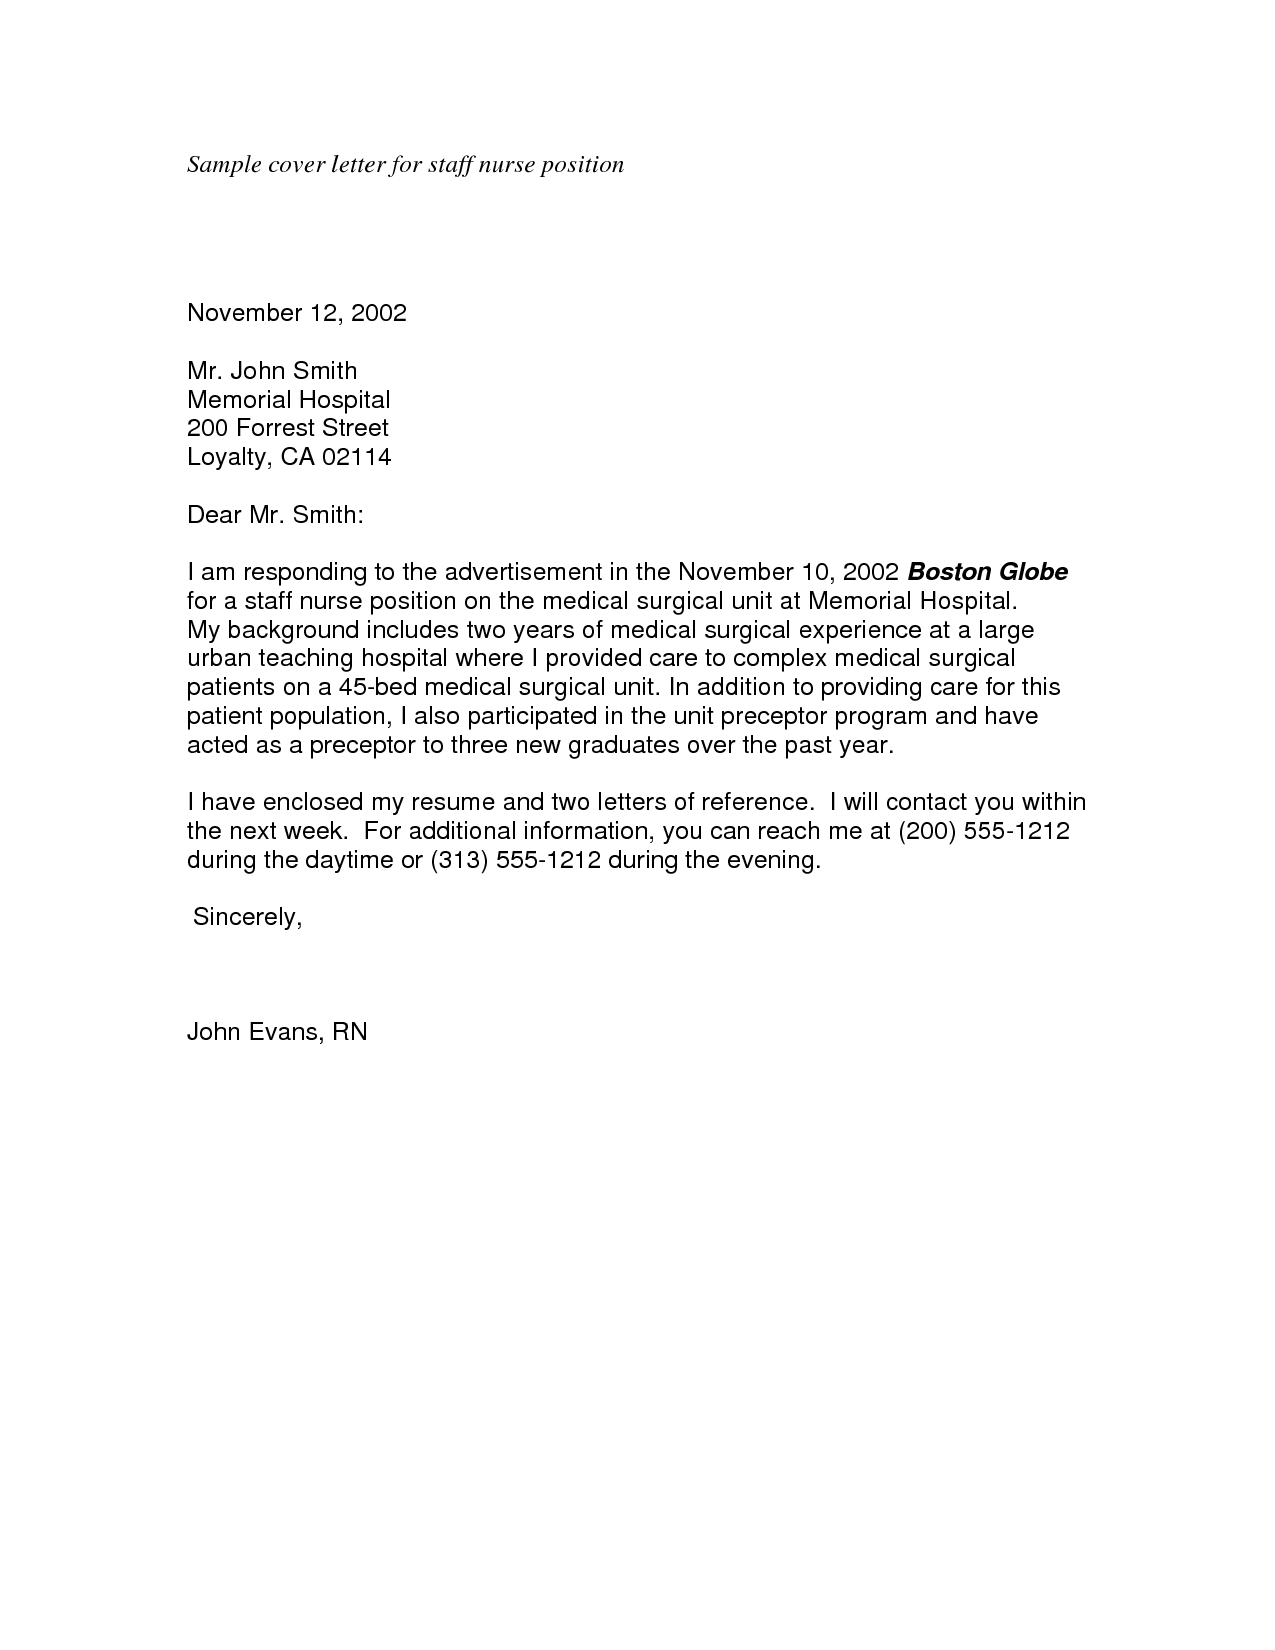 sample job letters job application cover letter easy template ...